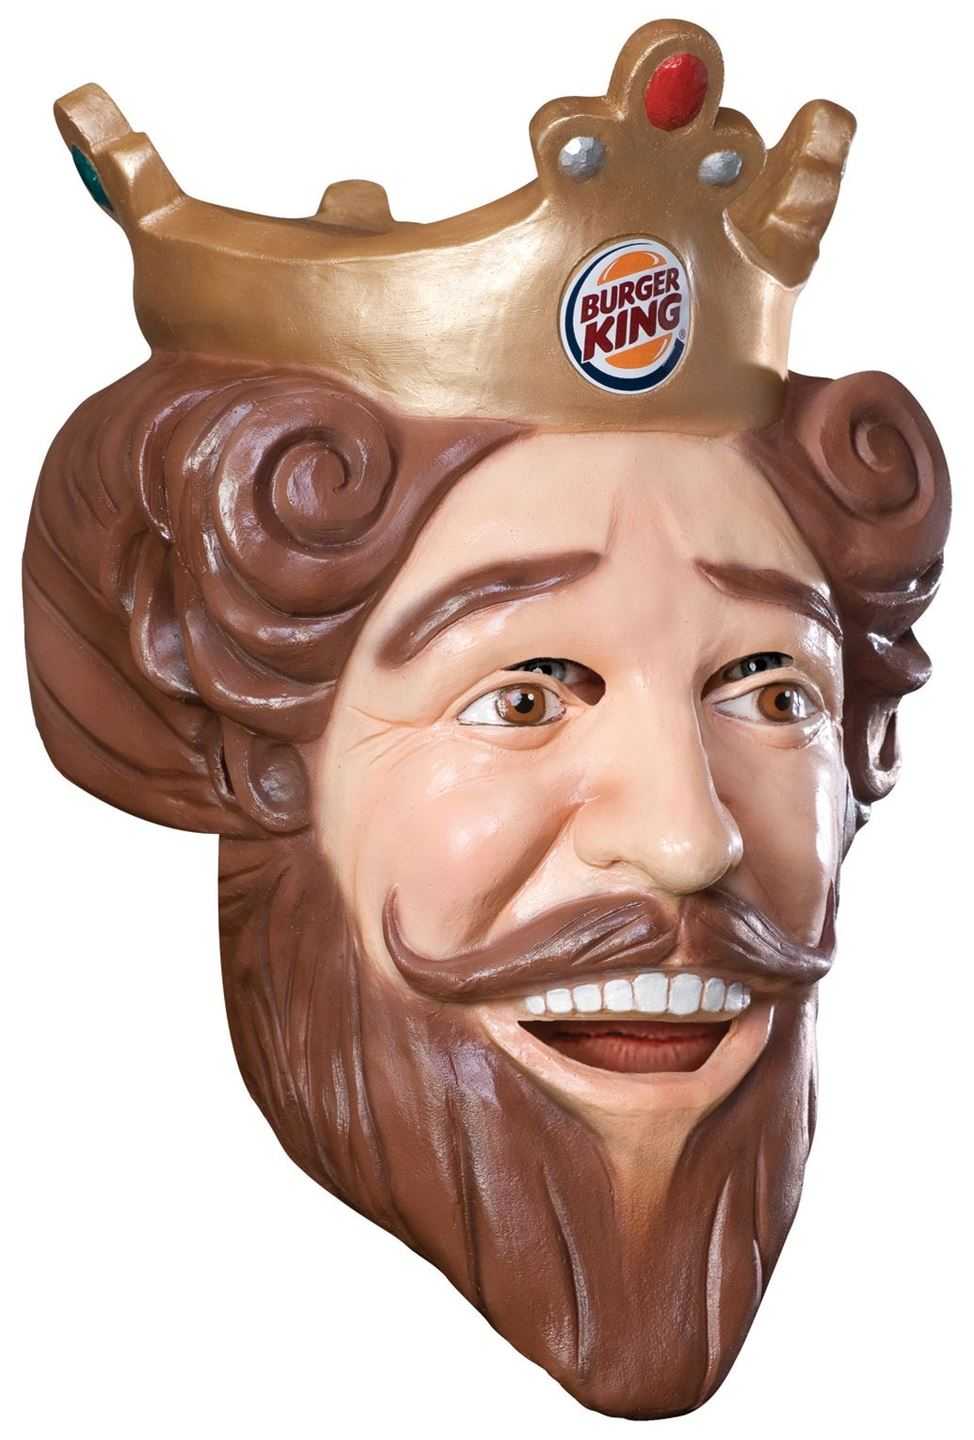 Have you ever seen the burger king?